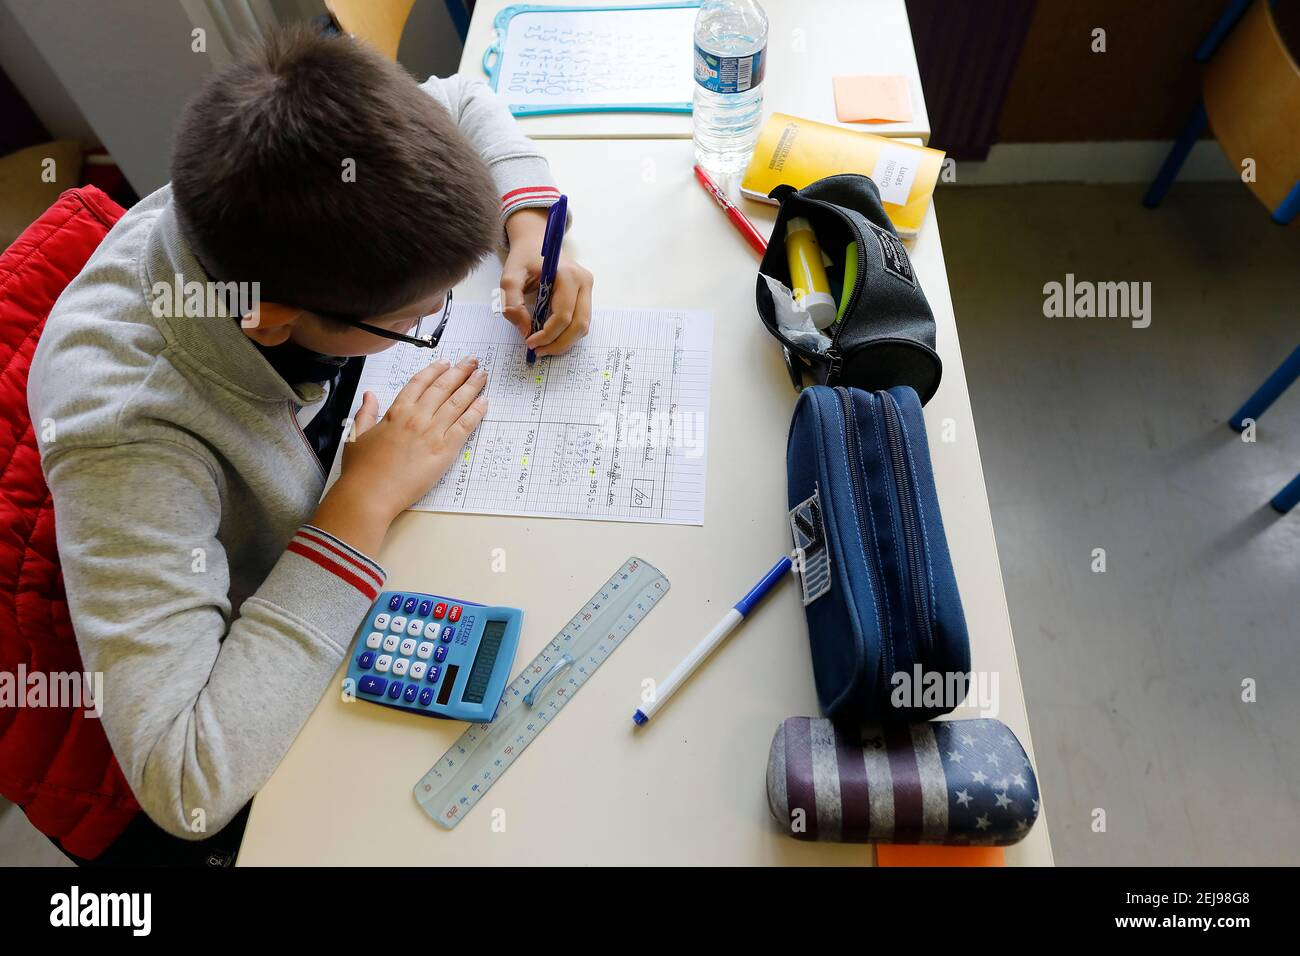 Primary school in montrouge, france Stock Photo